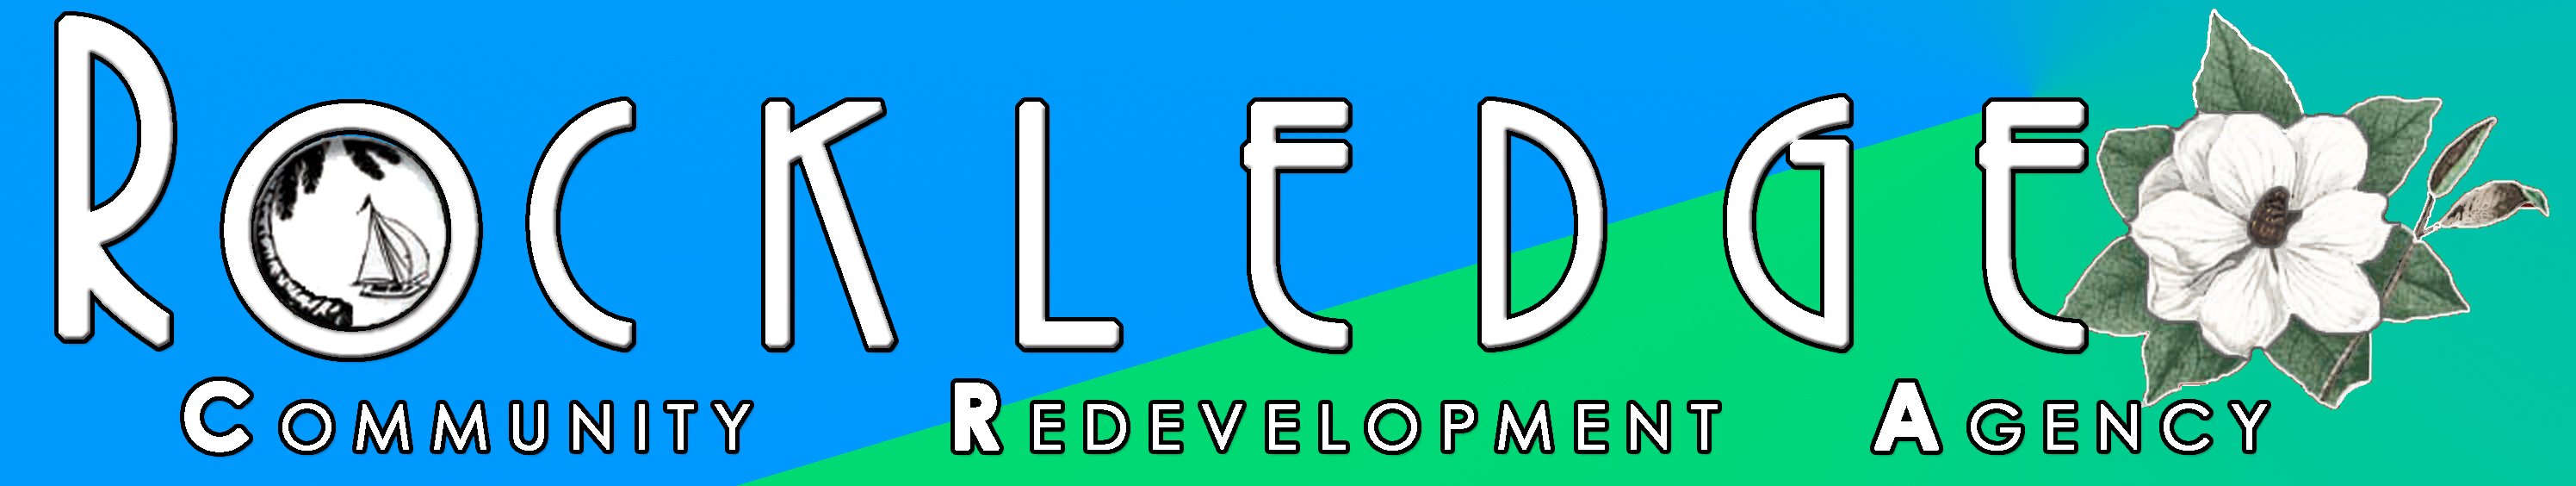 Community Redevelopment Agency logo